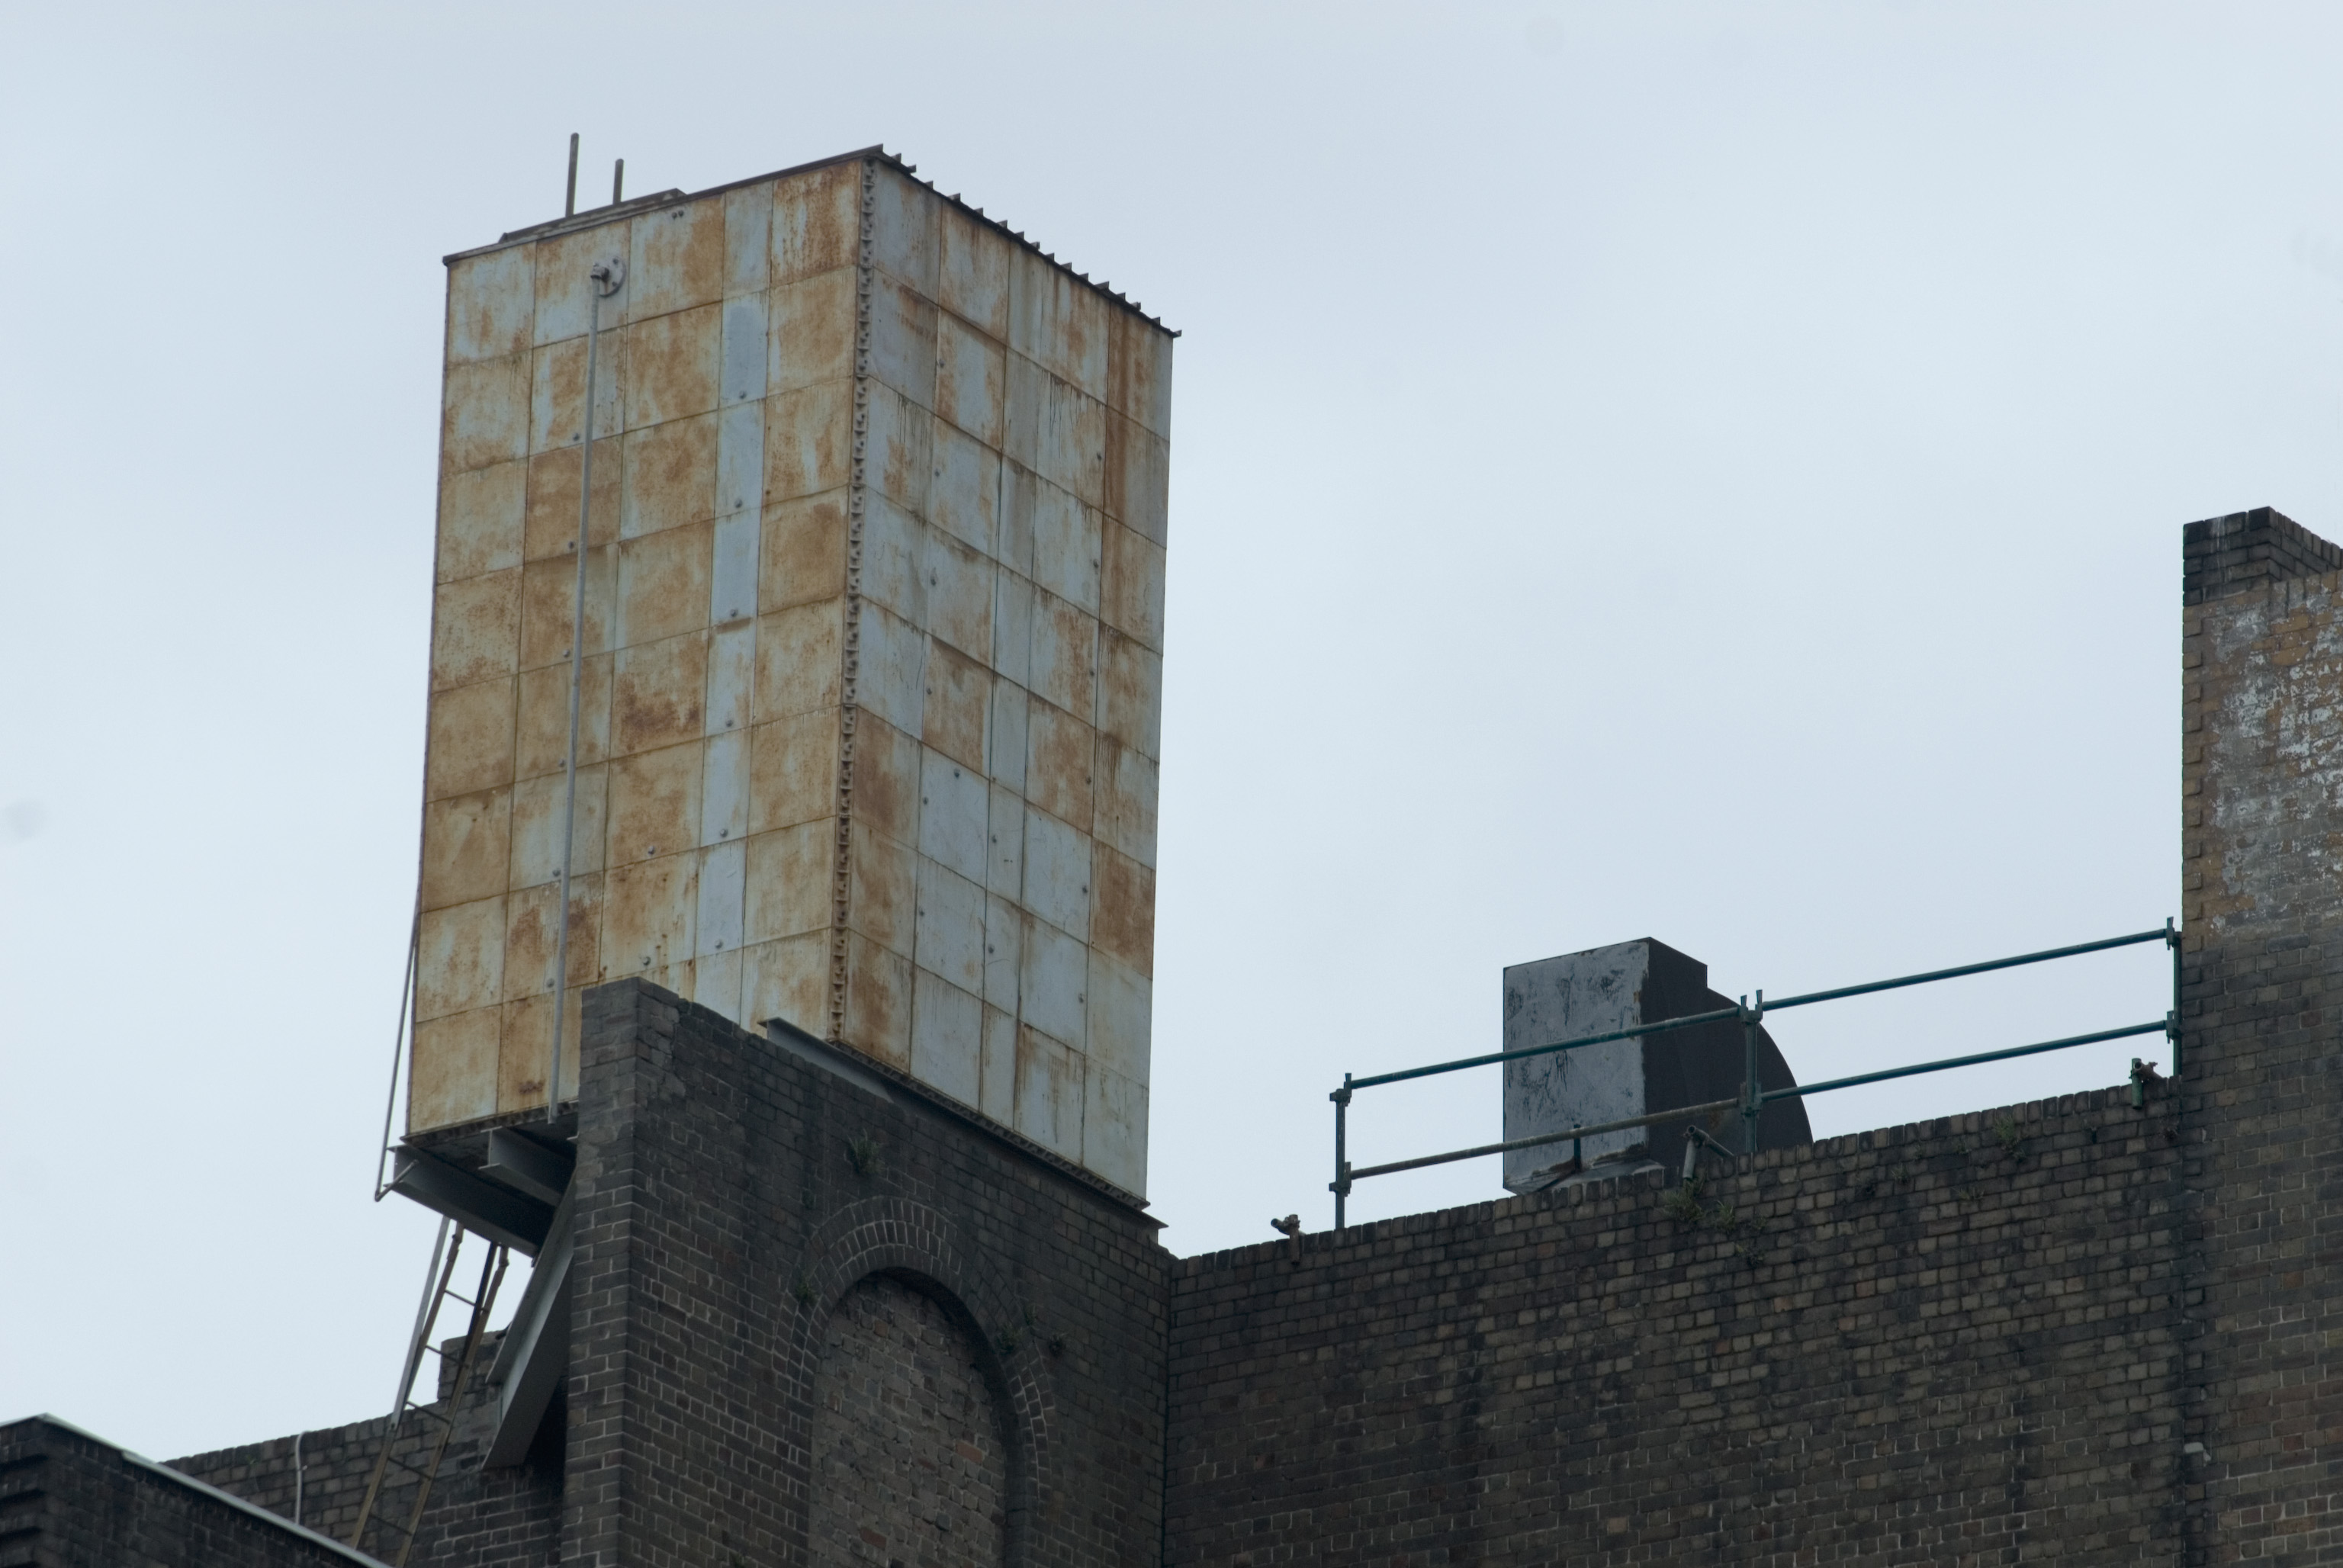 a rusty old rooftop water tank